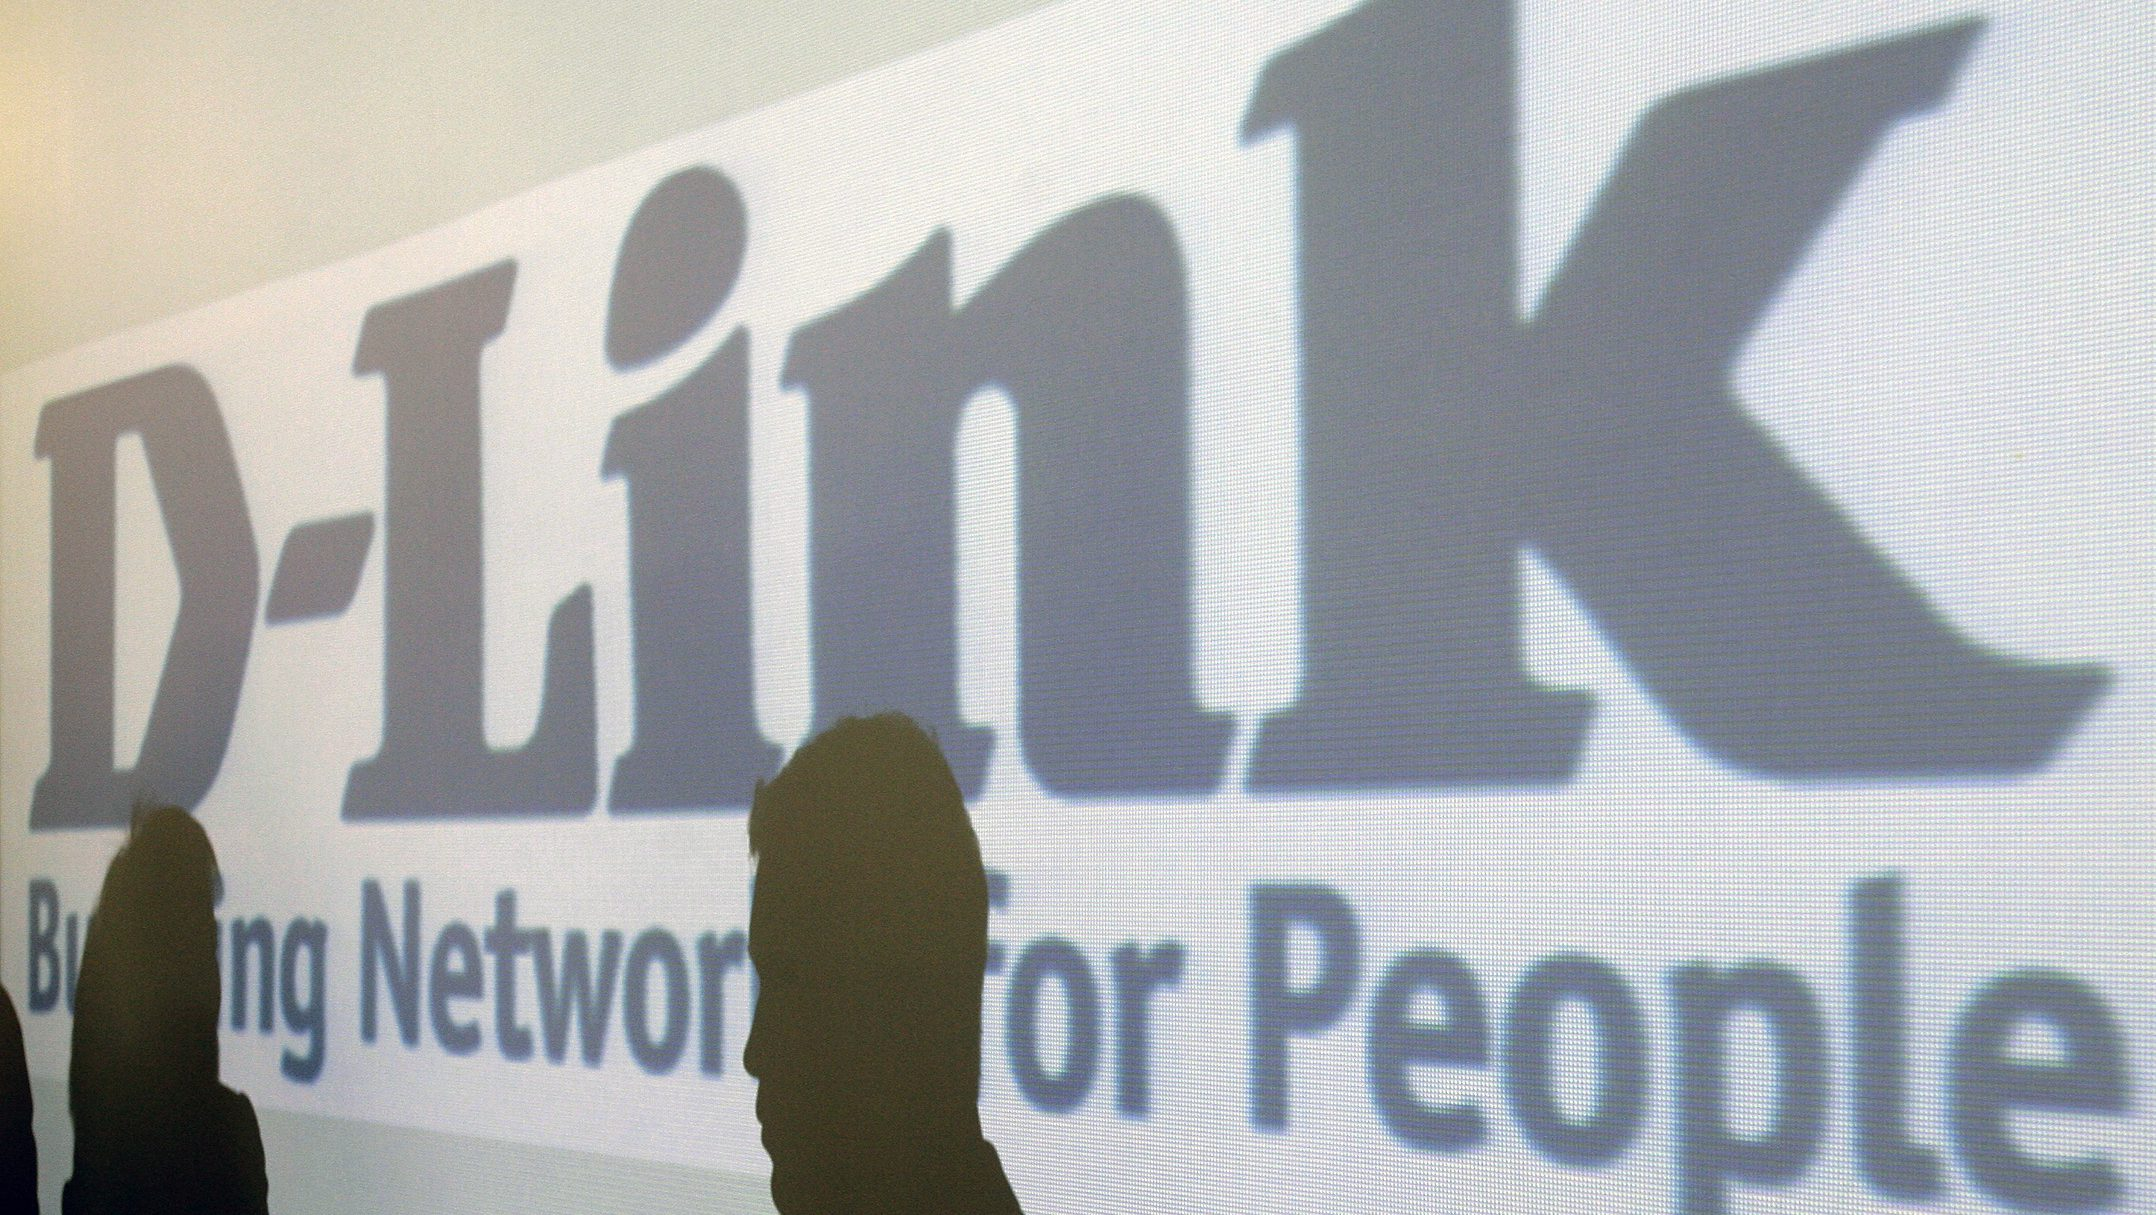 Shadows are cast on the D-link logo in the company's headquarters in Taipei February 17, 2009. Taiwan networking equipment maker D-Link said on Tuesday its fourth-quarter profit will beat market expectations and forecast its operating margins will stay positive through June despite the global downturn.